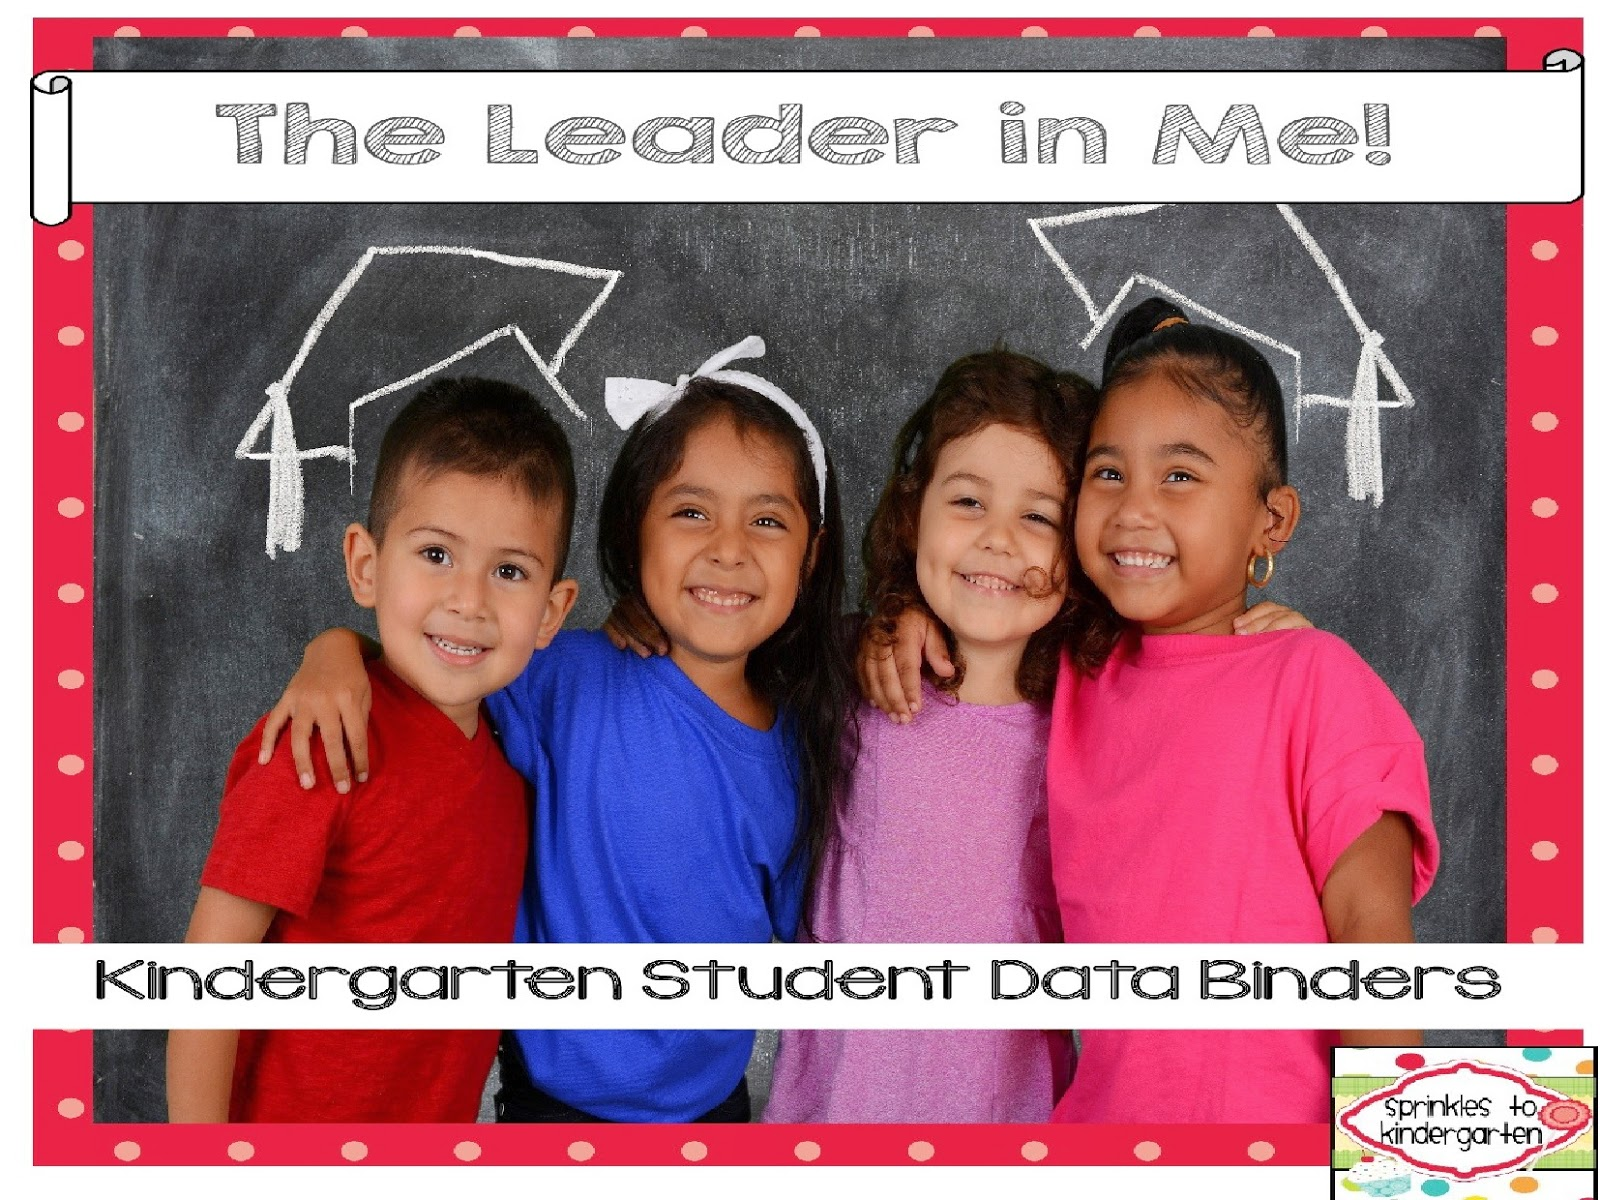 http://www.teacherspayteachers.com/Product/The-Leader-in-Me-Kindergarten-Student-Data-Binders-1623091